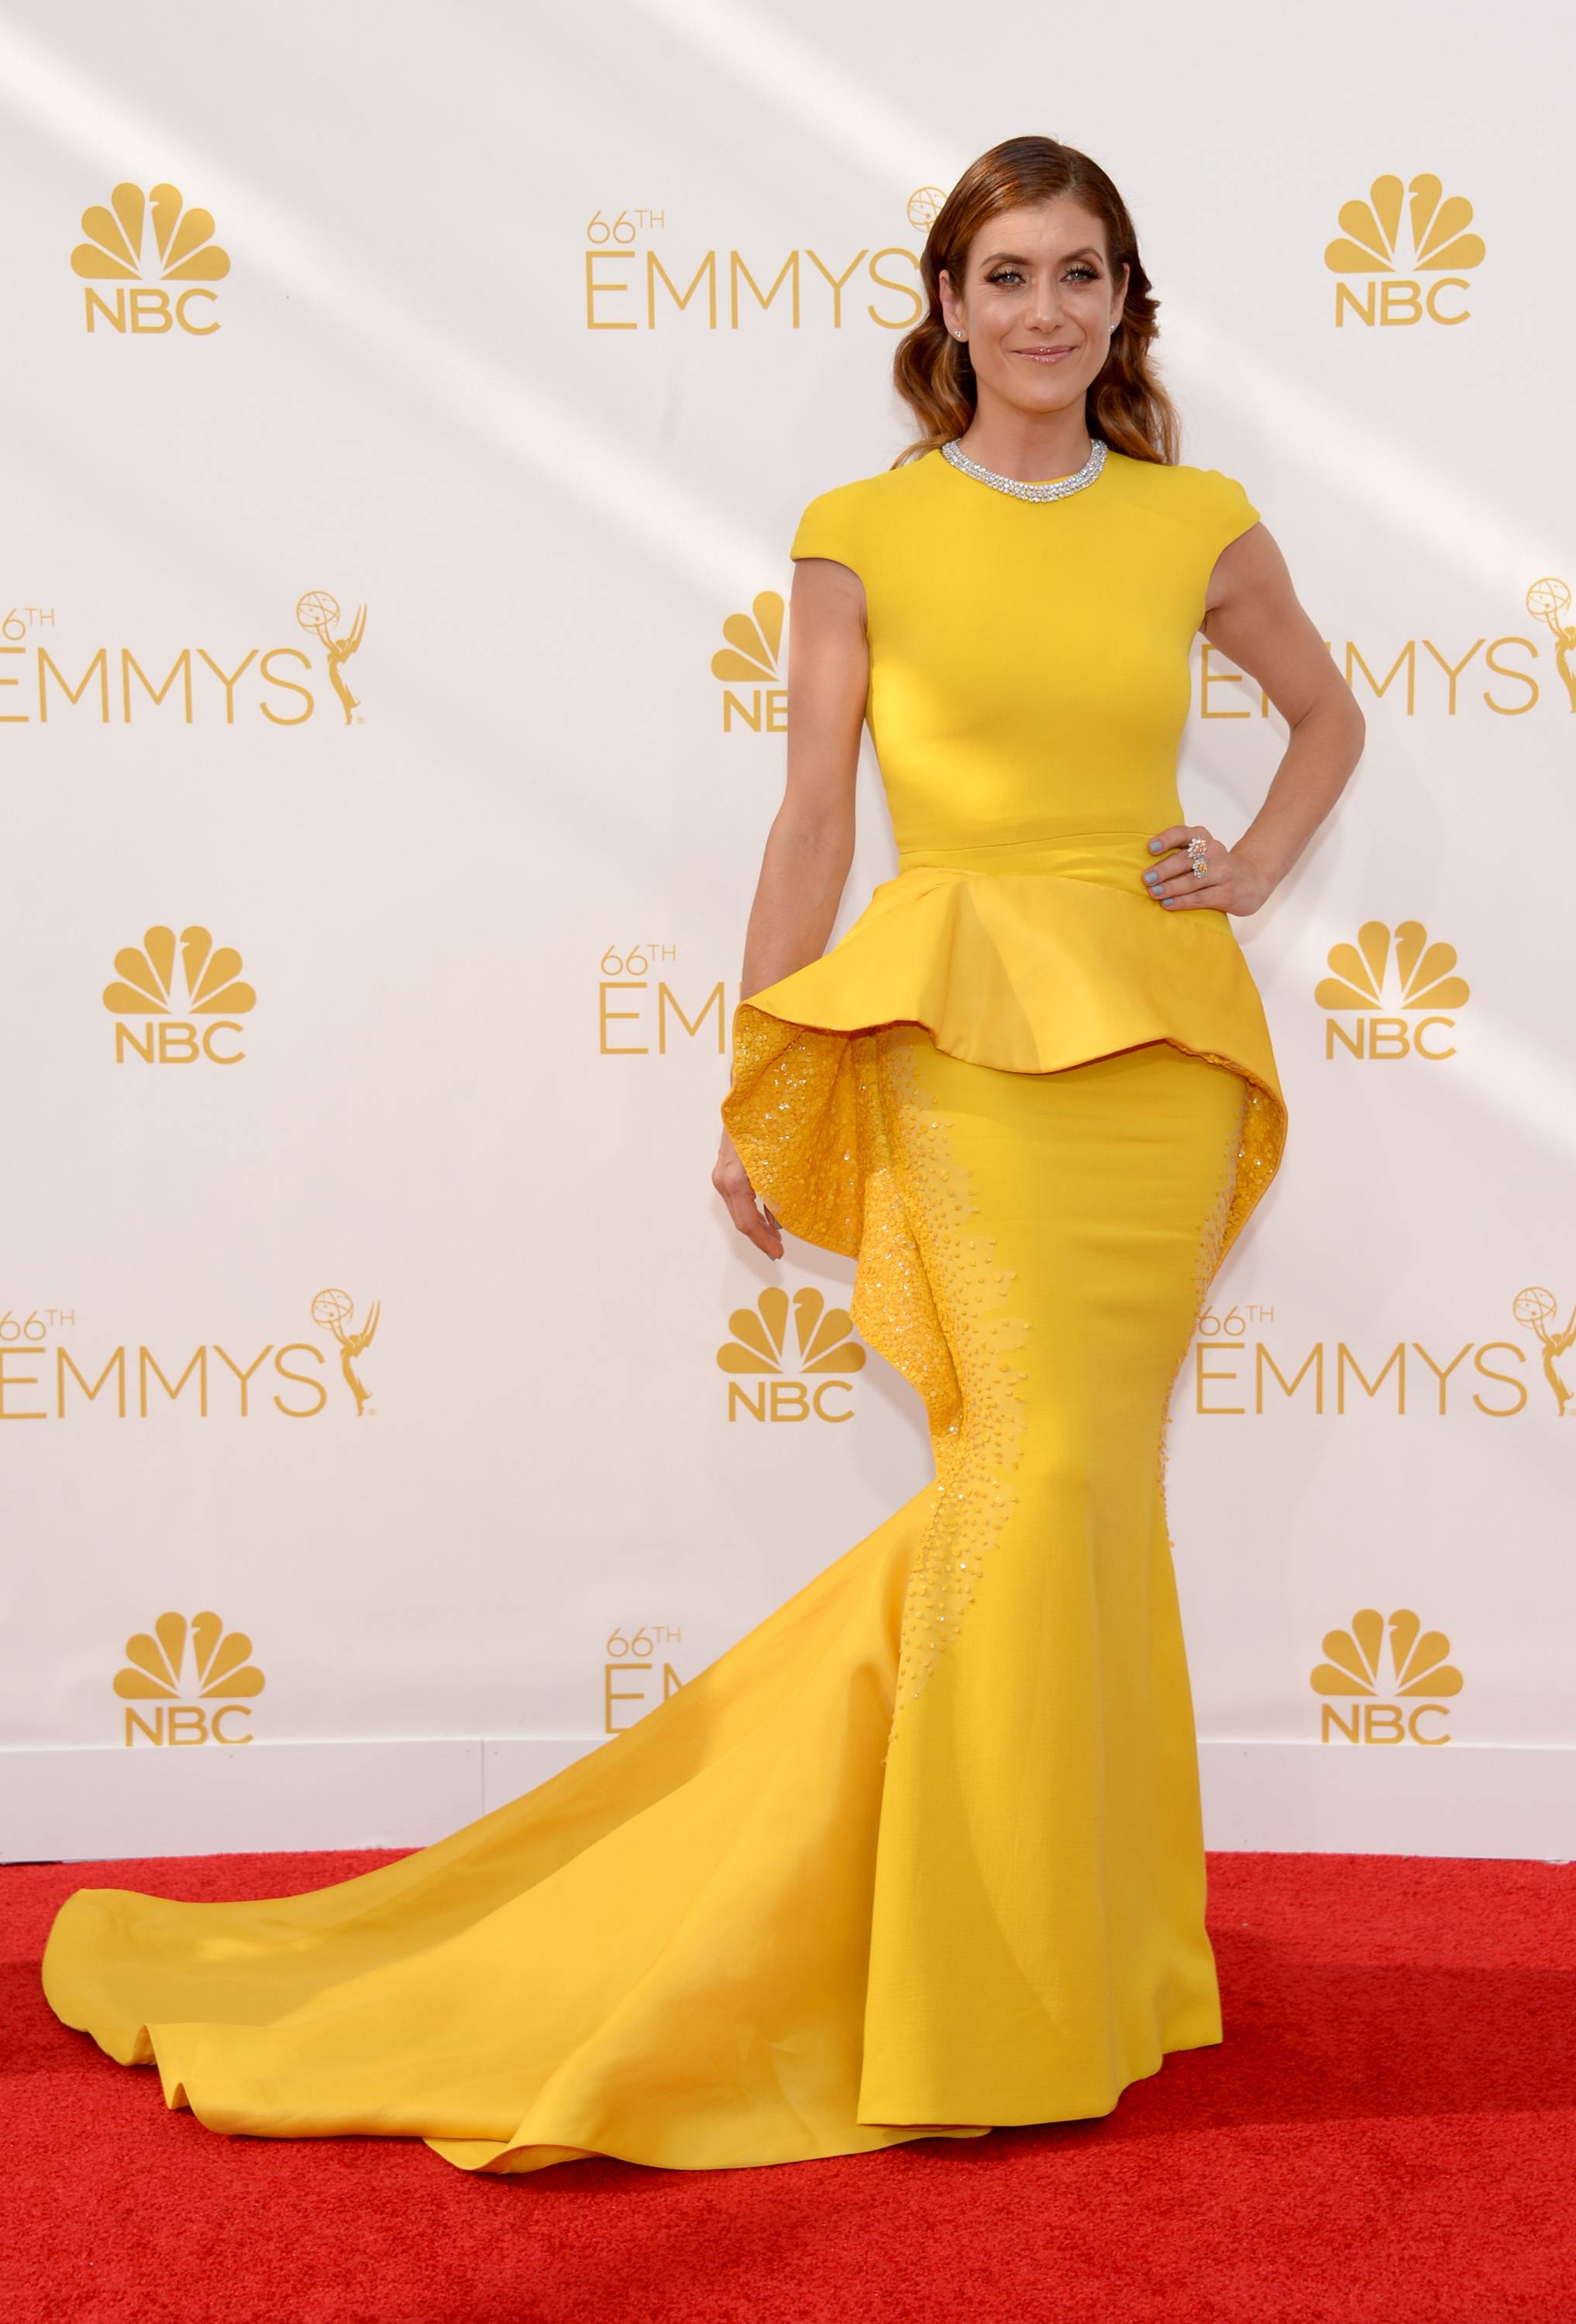 Kate Walsh arrives at the 66th Primetime Emmy Awards at the Nokia Theatre.